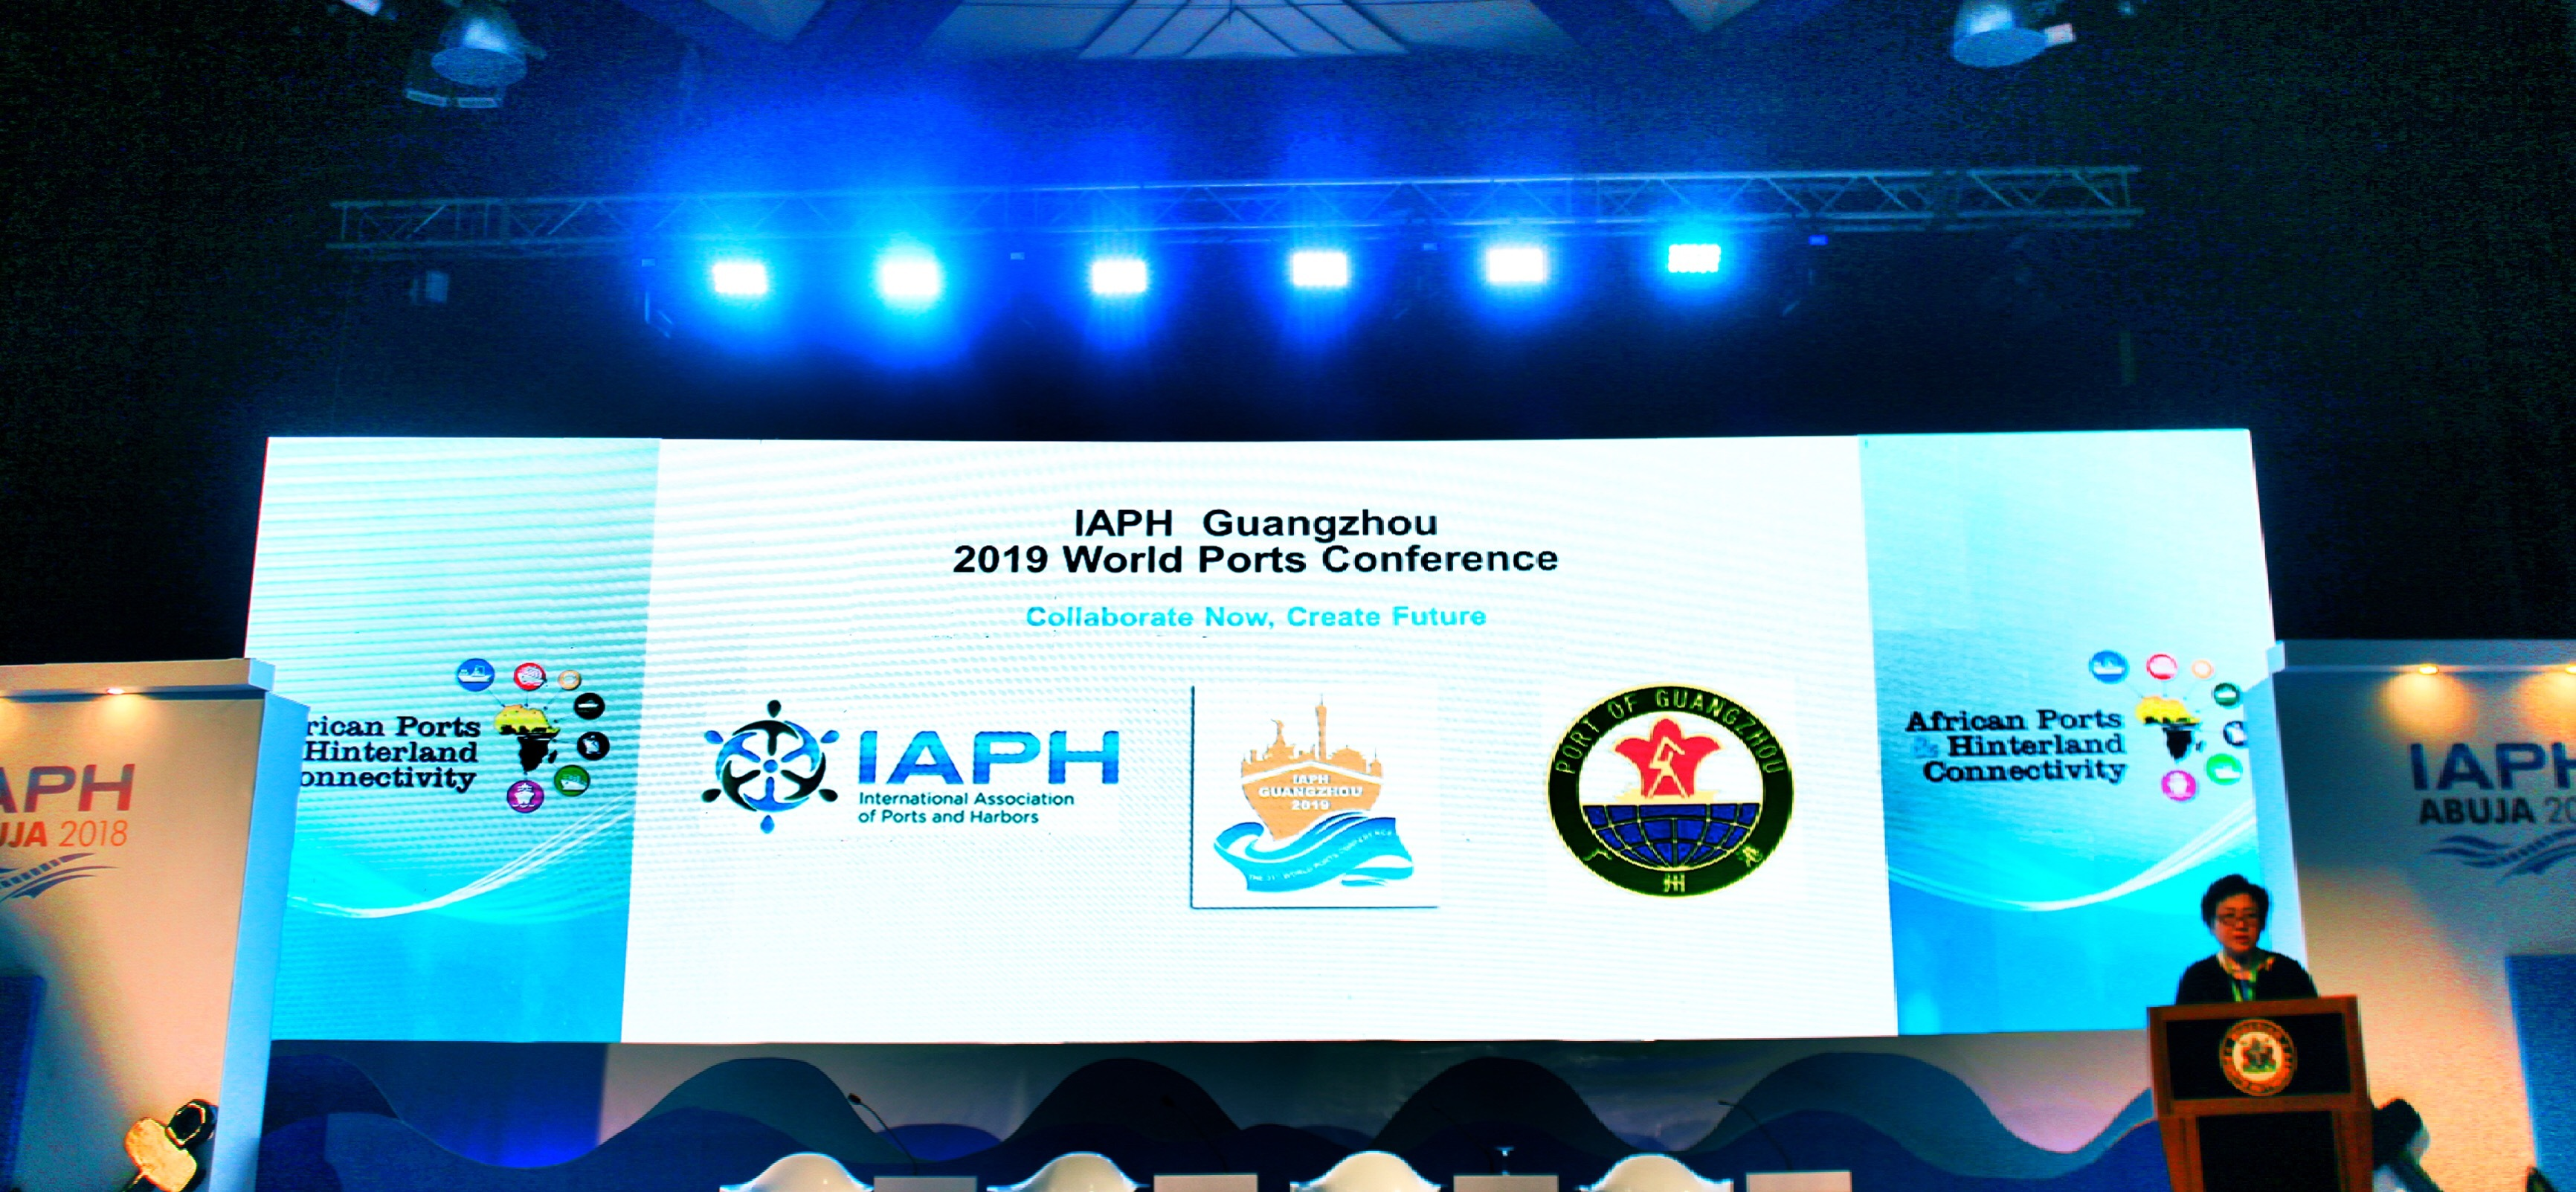 Guangzhou Port Authority Strengthens Collaboration with